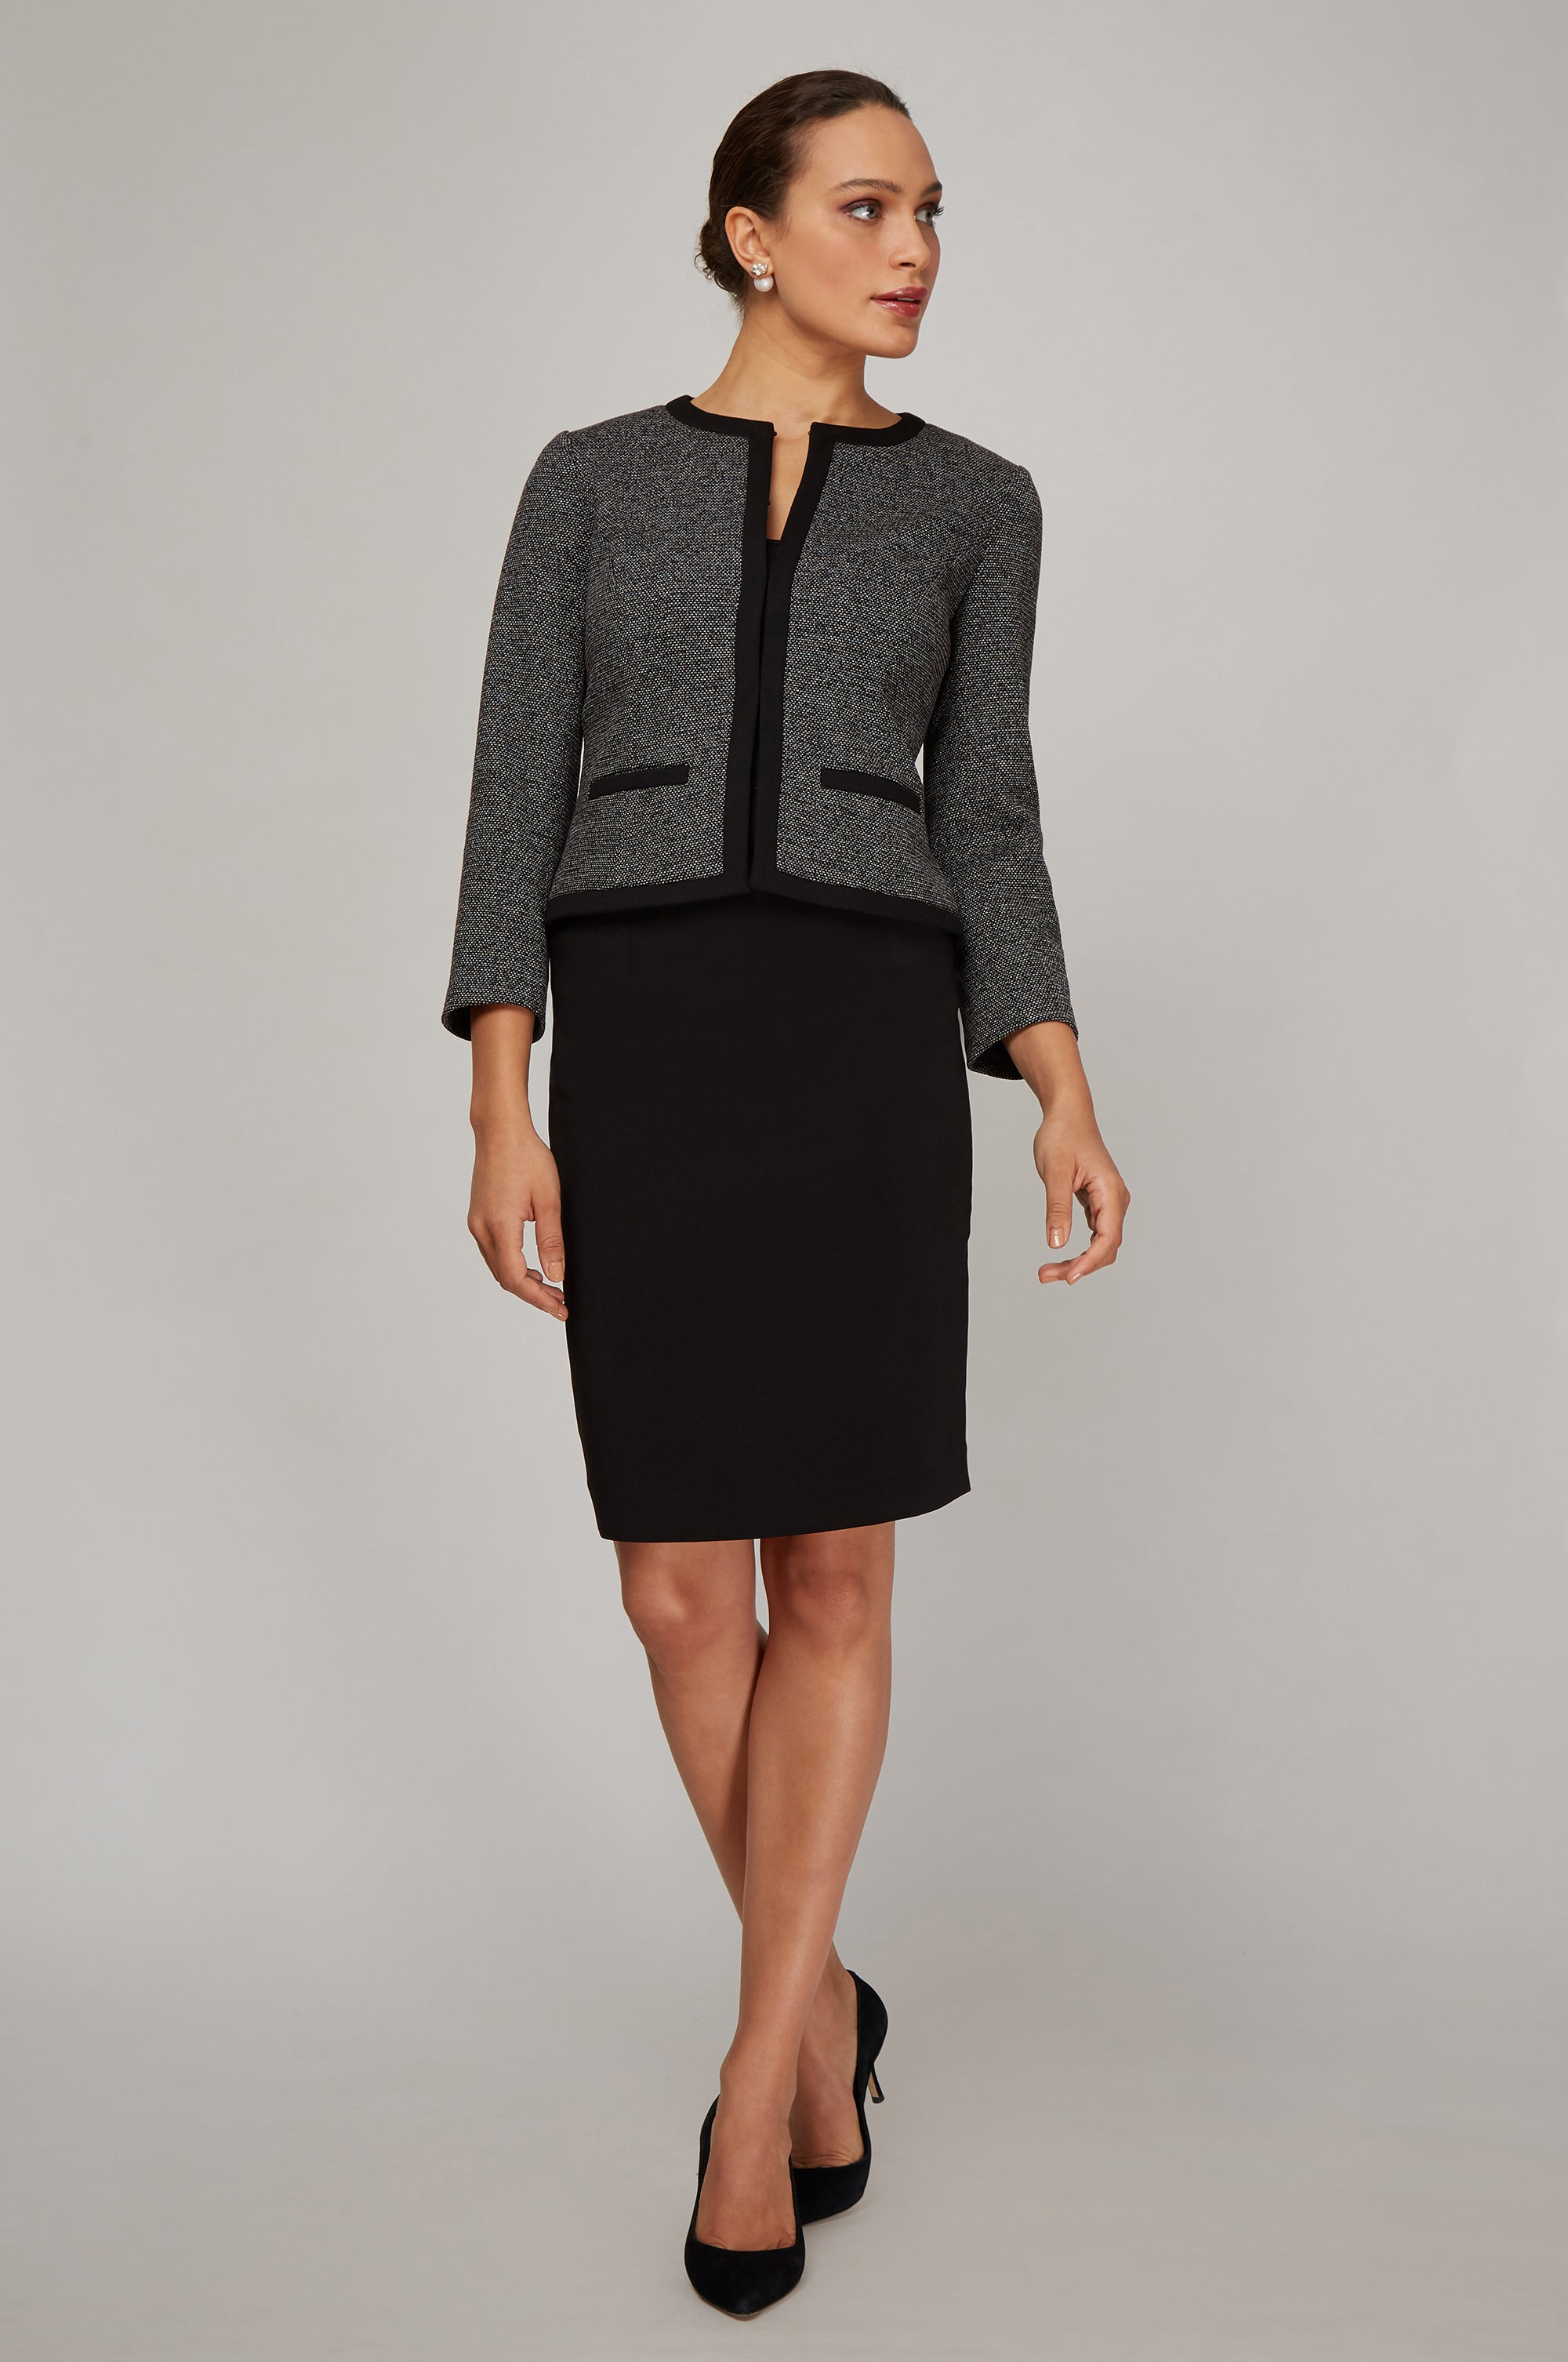 Women's Michelle Jacket in Black and White Knit | Nora Gardner